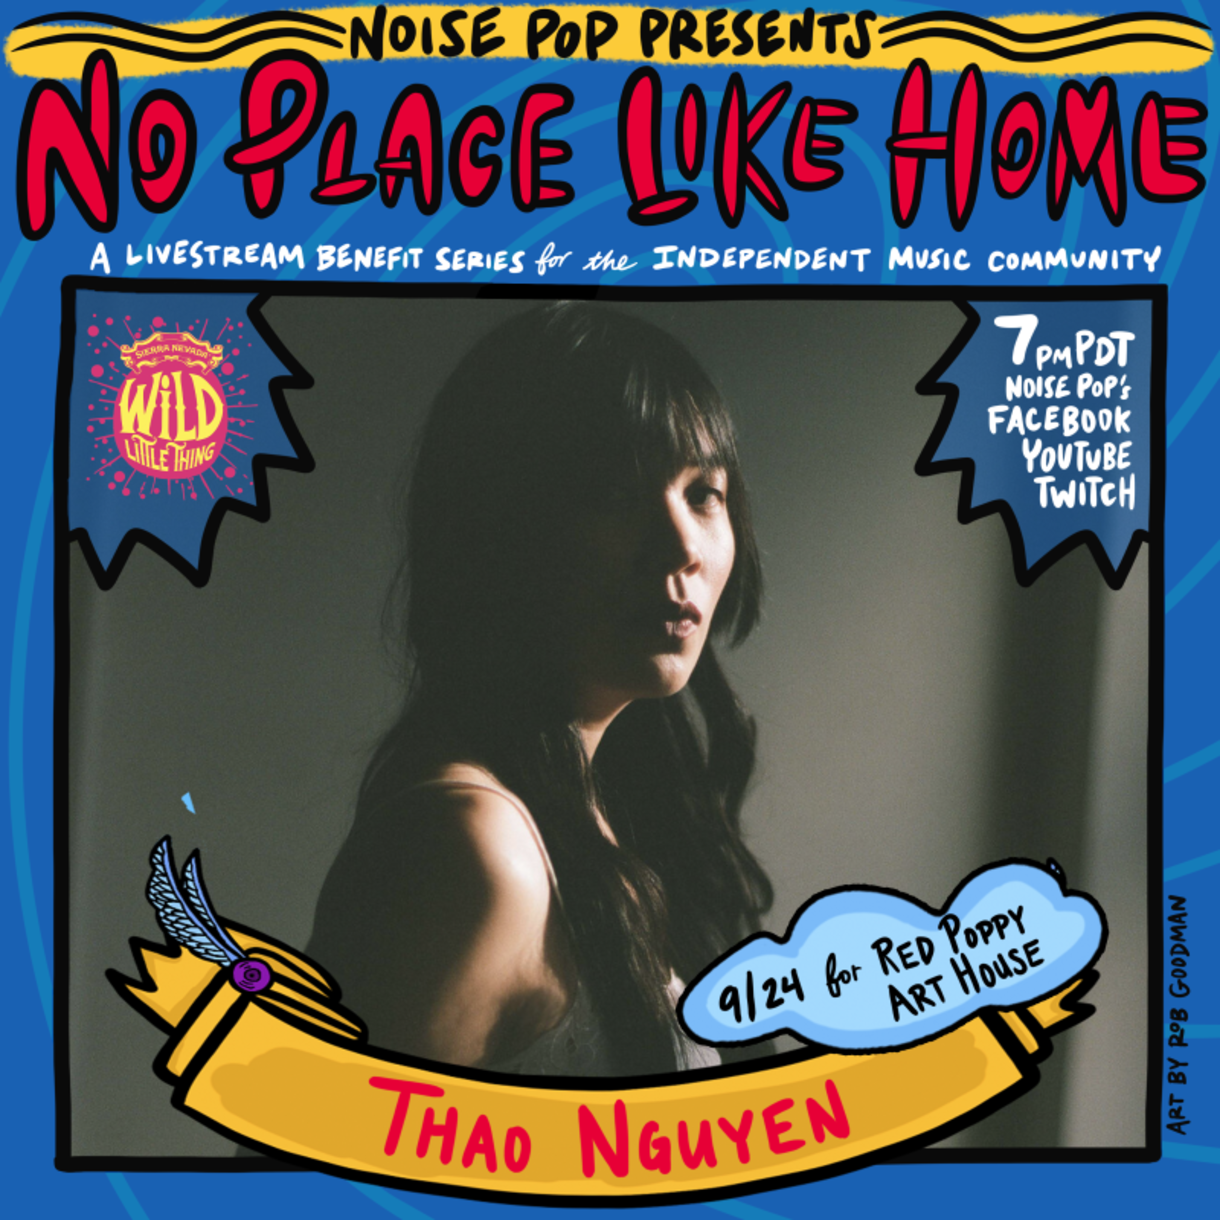 Noise Pop presents No Place Like Home with Thao Nguyen